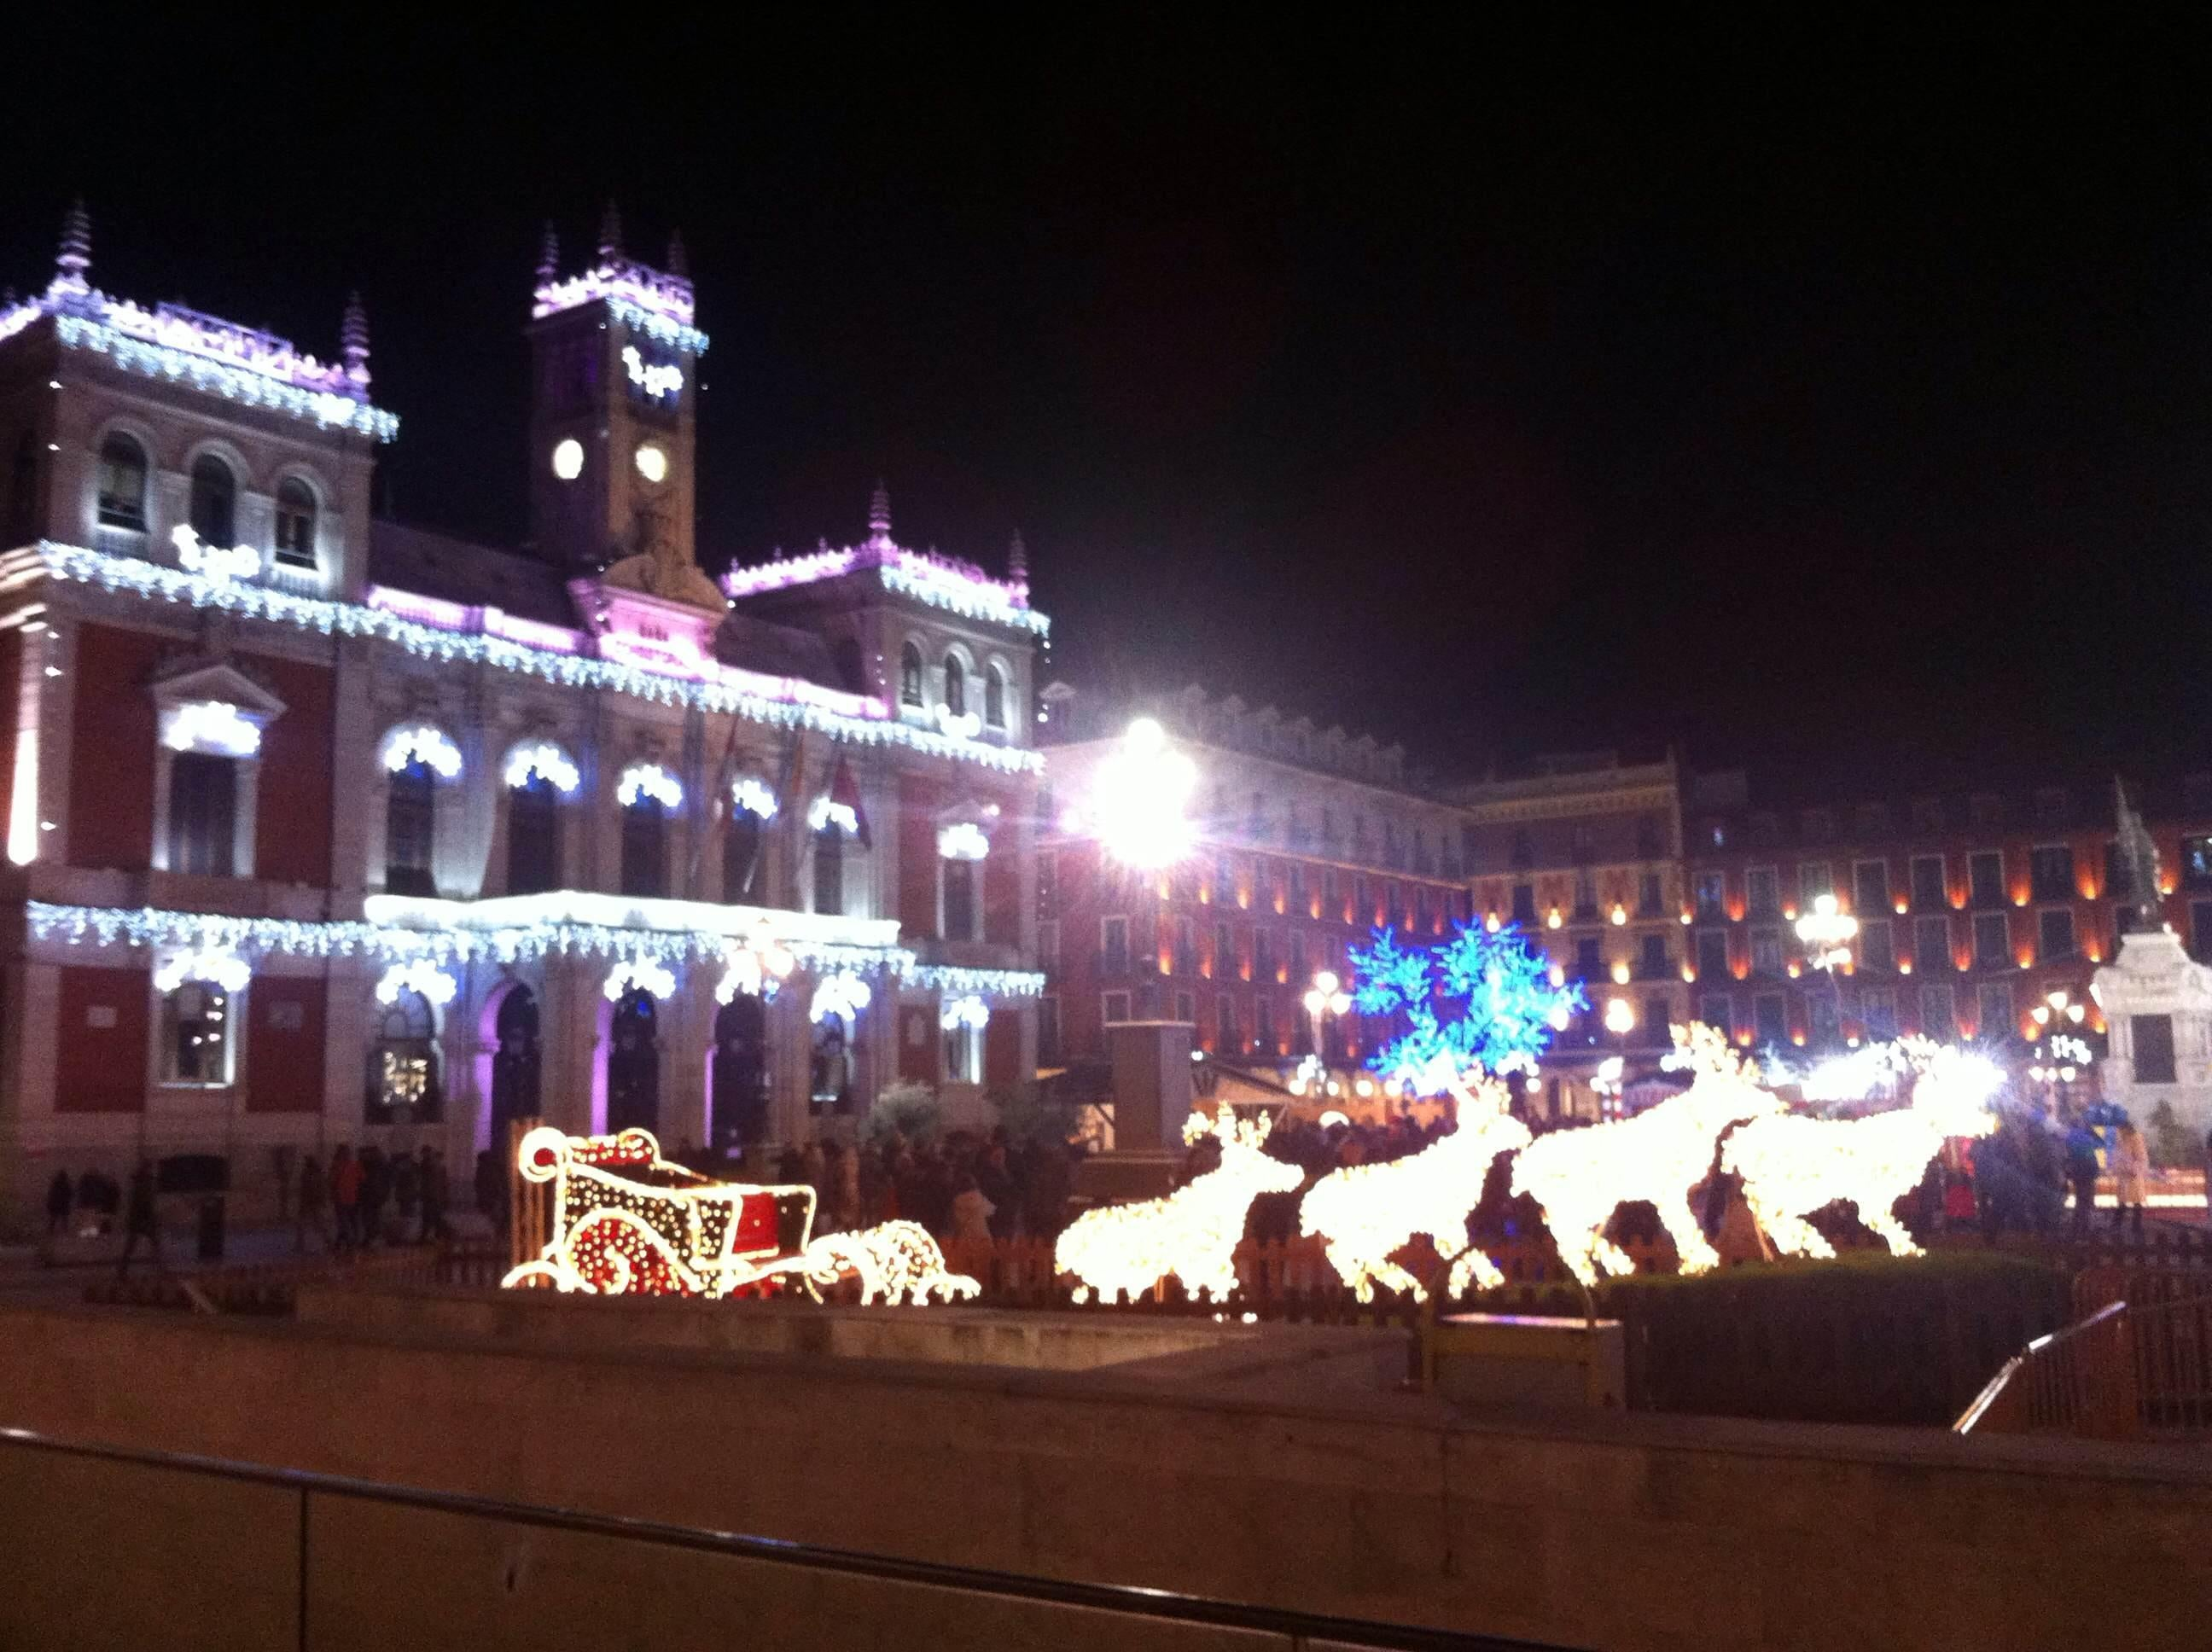 Decoración navideña en Plaza Mayor